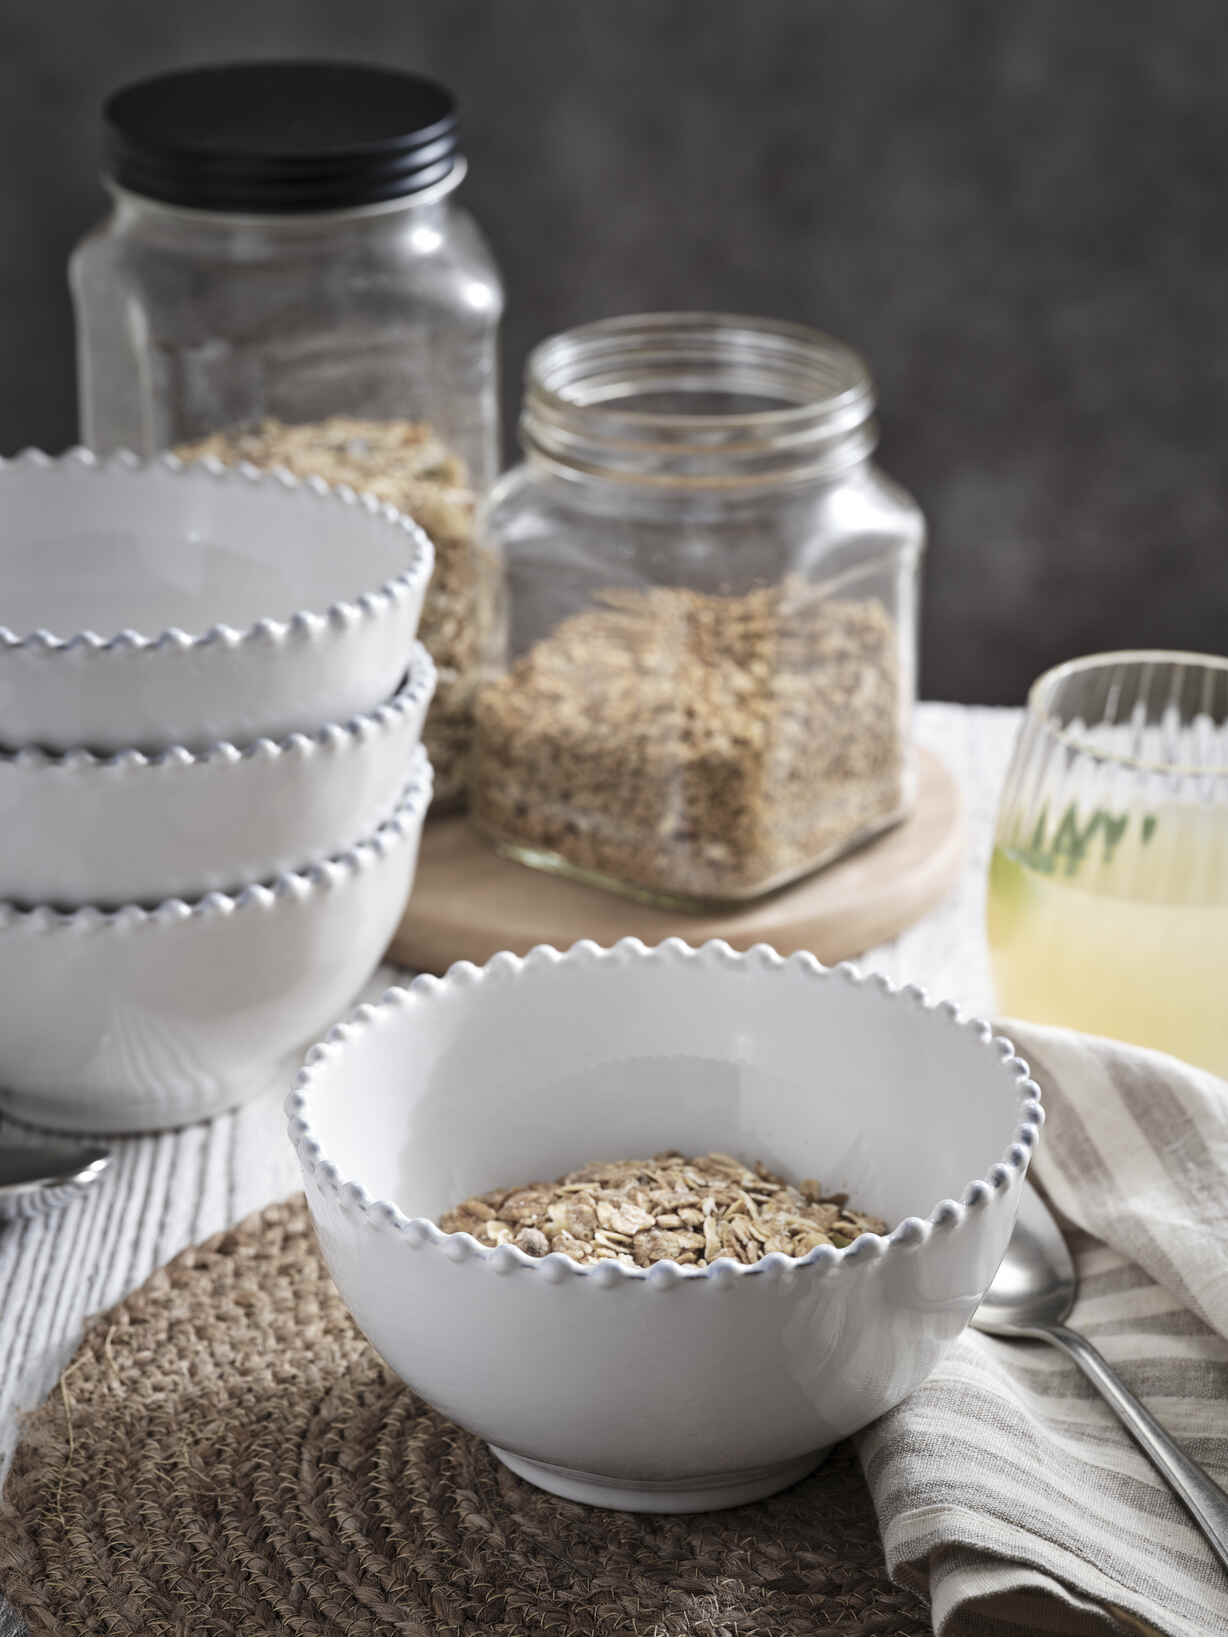 Nordic House Parla Cereal Bowl